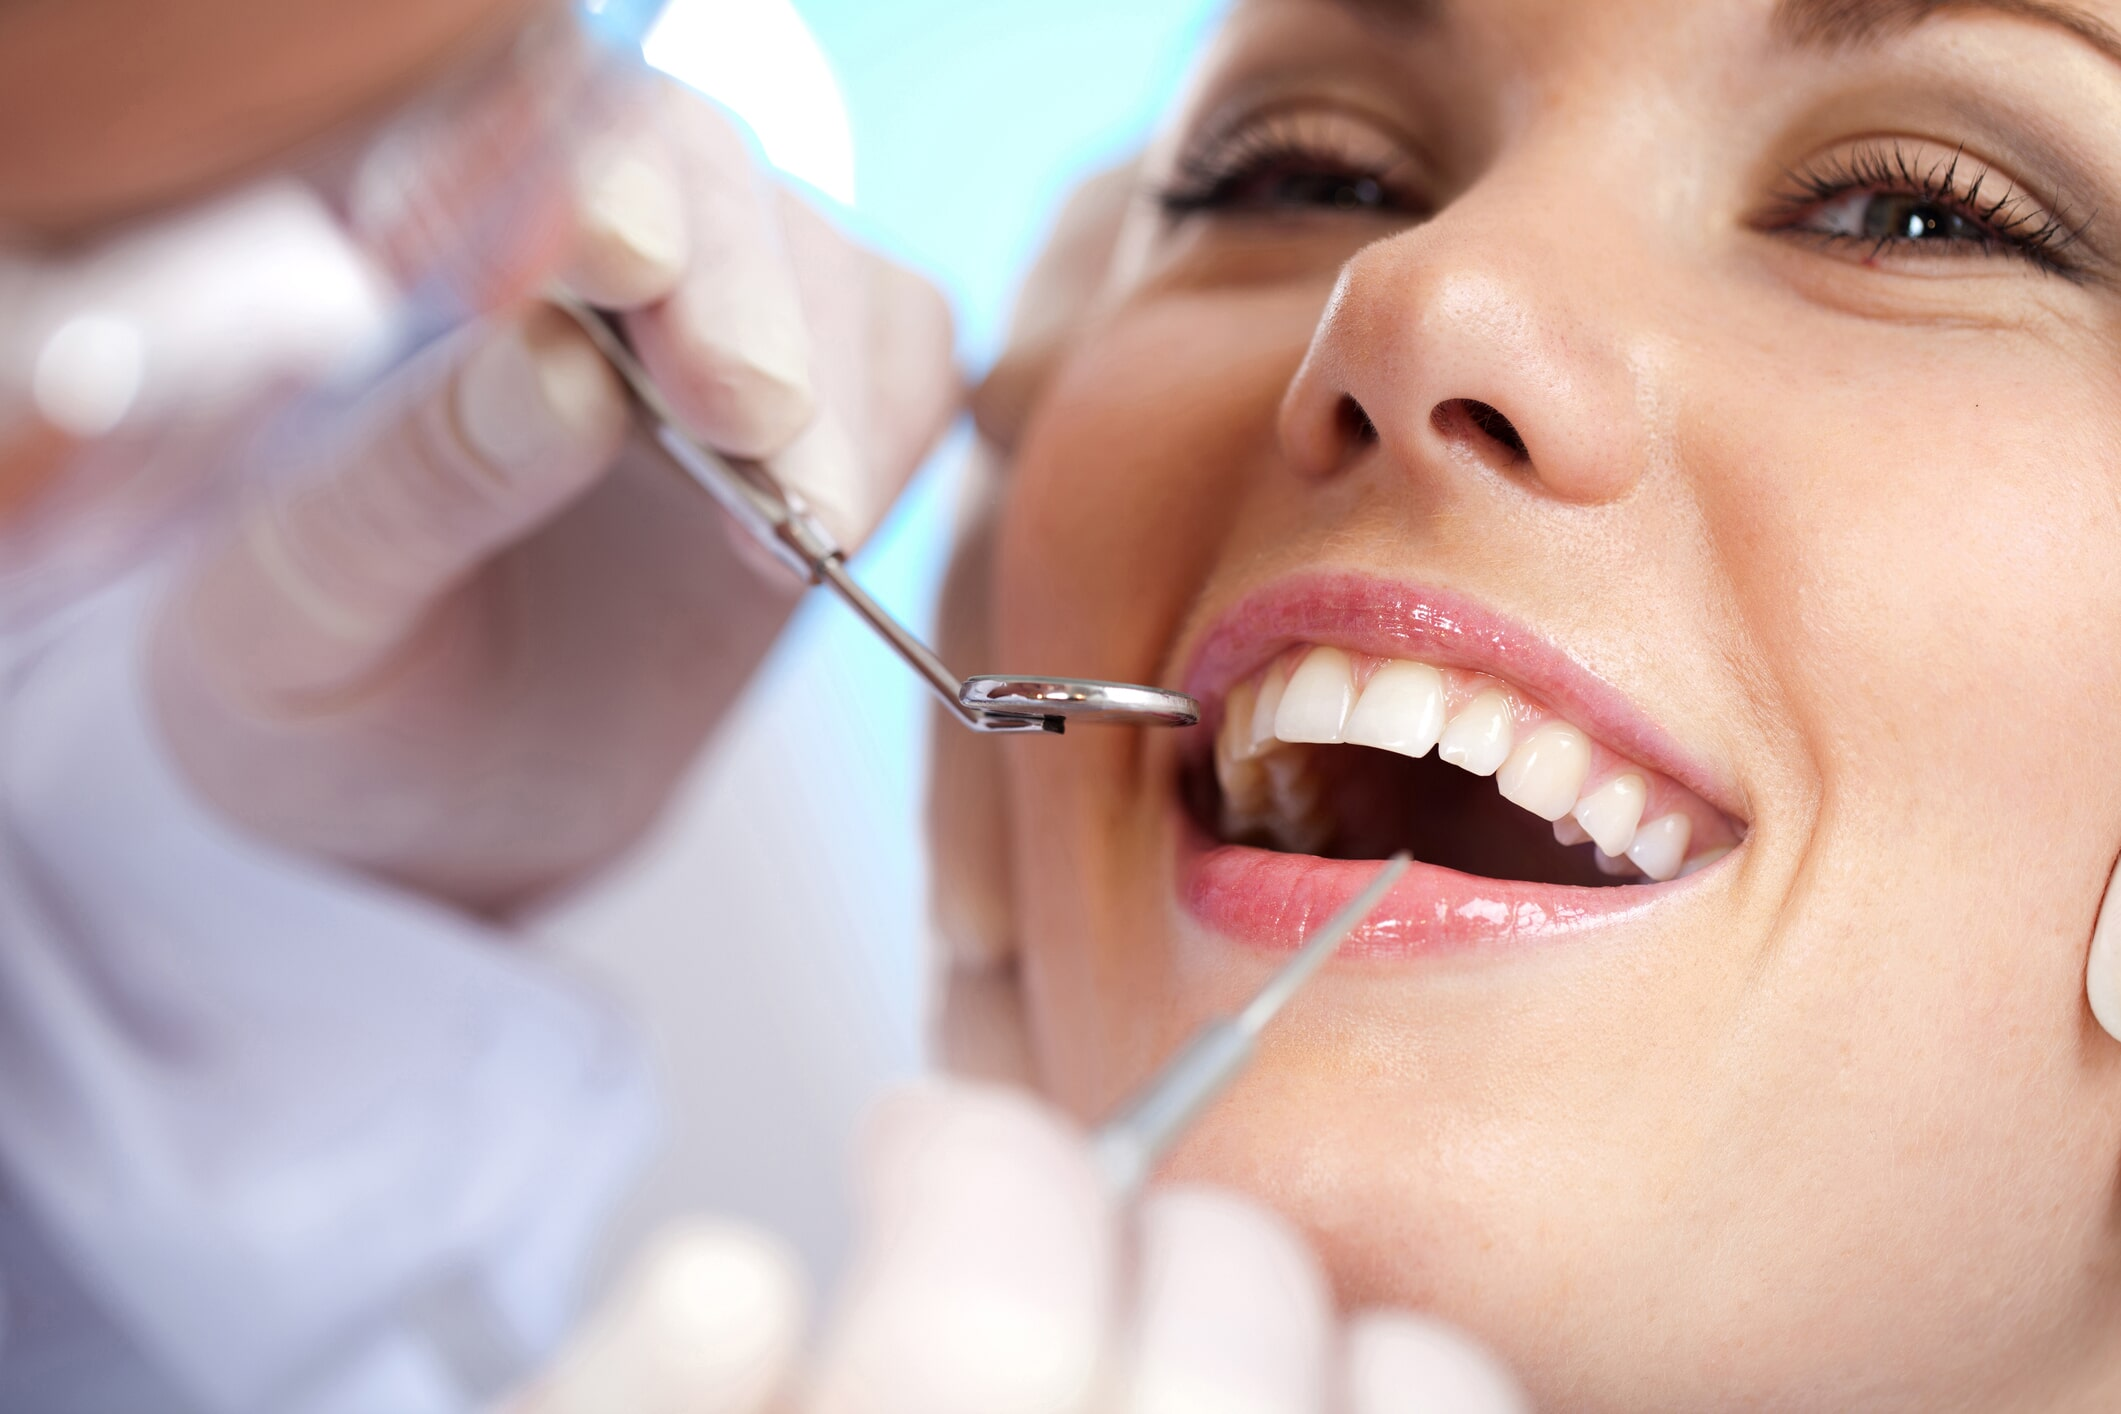 Many Effective Dental Services Are Available Today